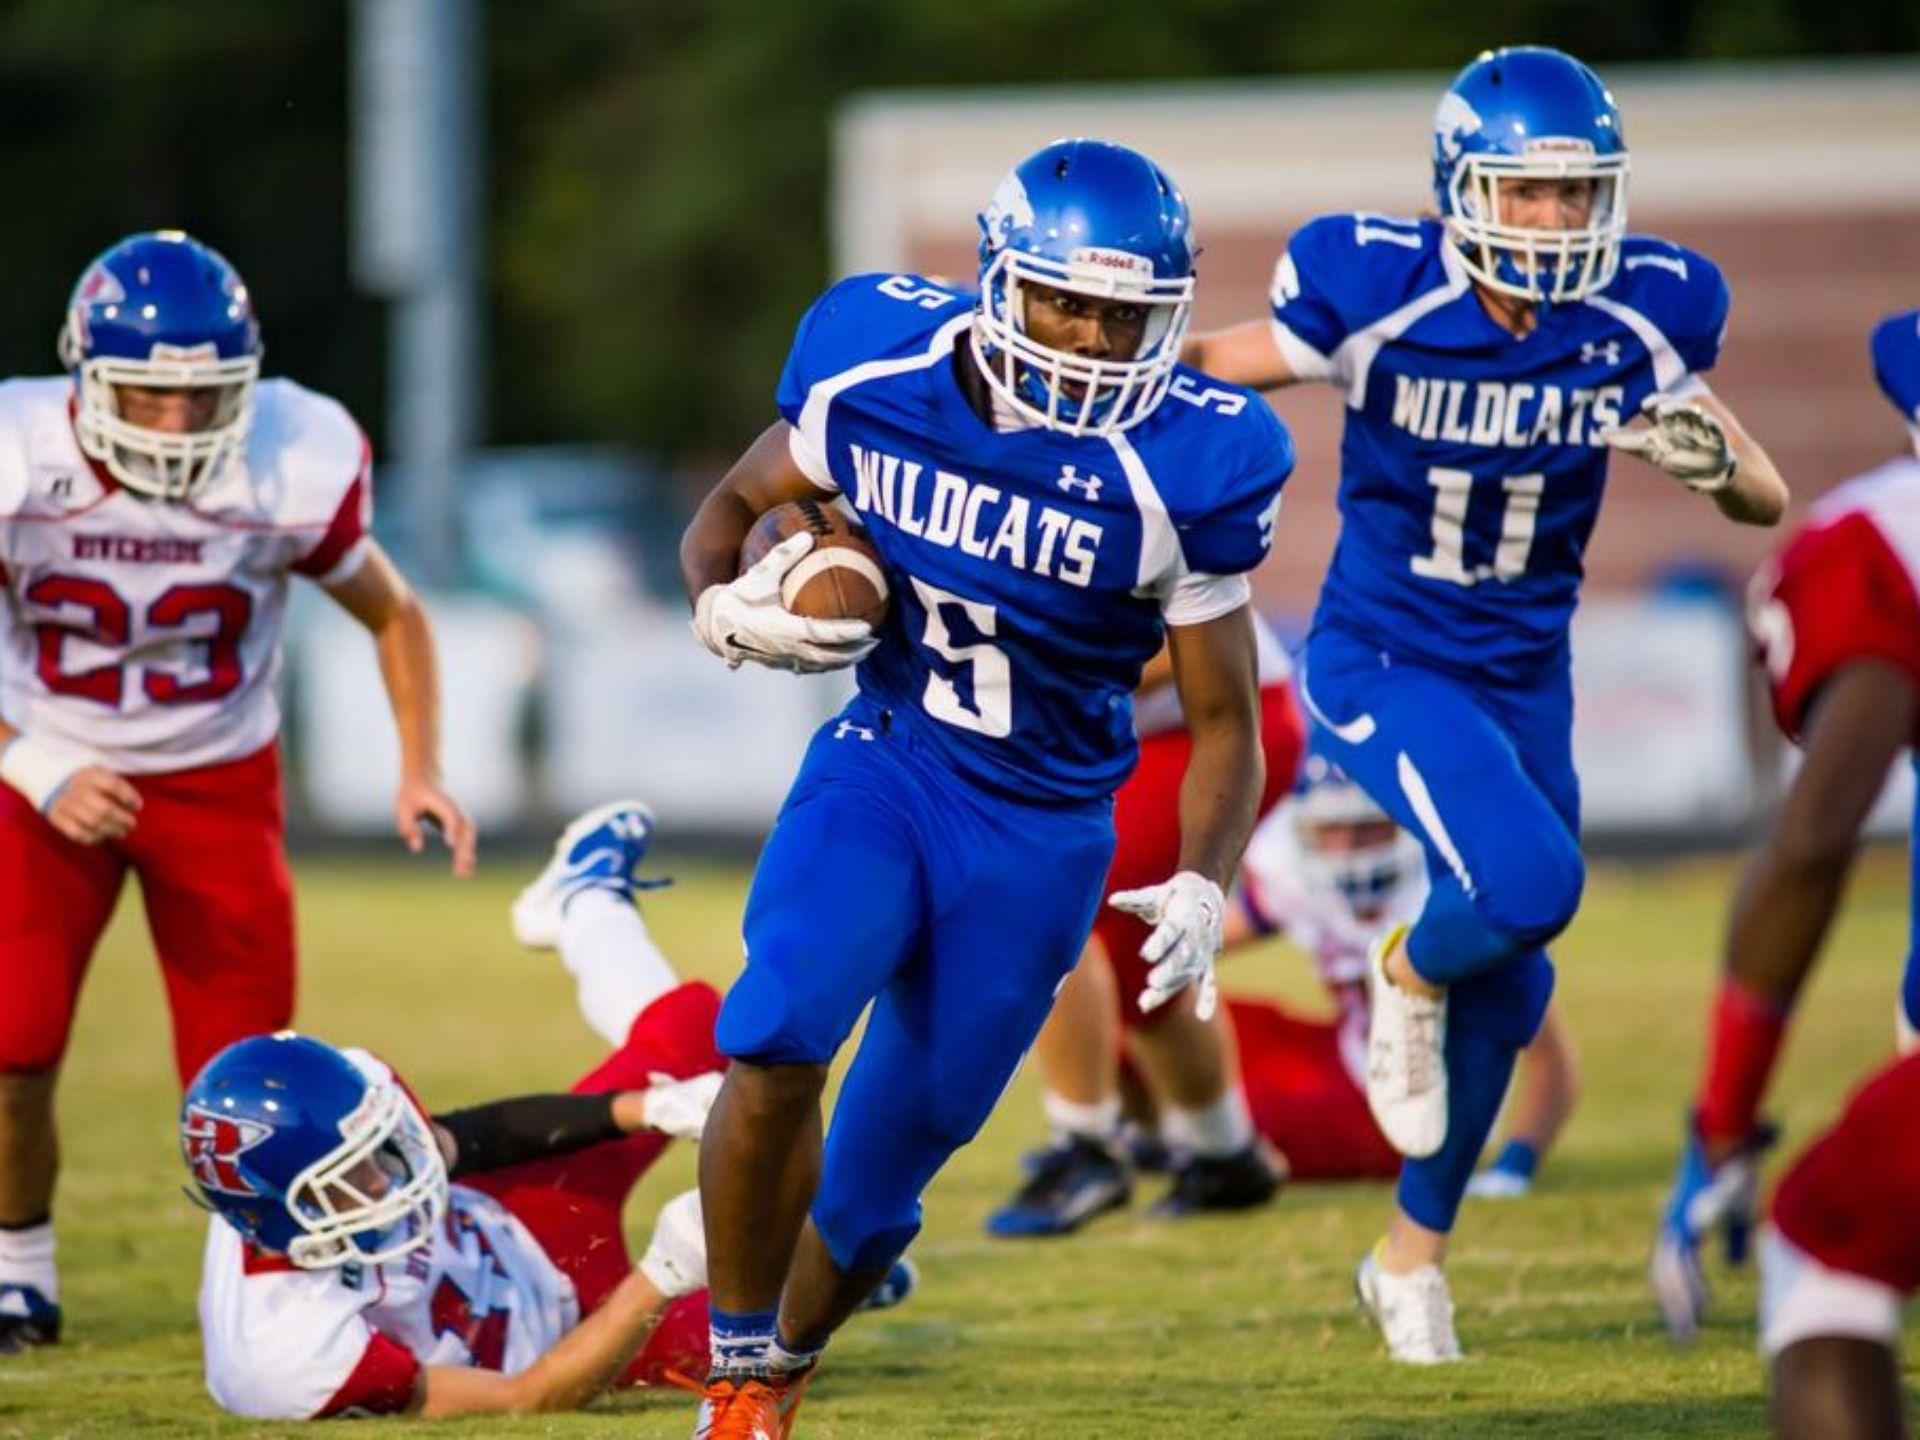 Junior running back Deonte Luster rushed for 193 yards and a touchdown in Woodmont's 32-0 victory against visiting Riverside Friday night.